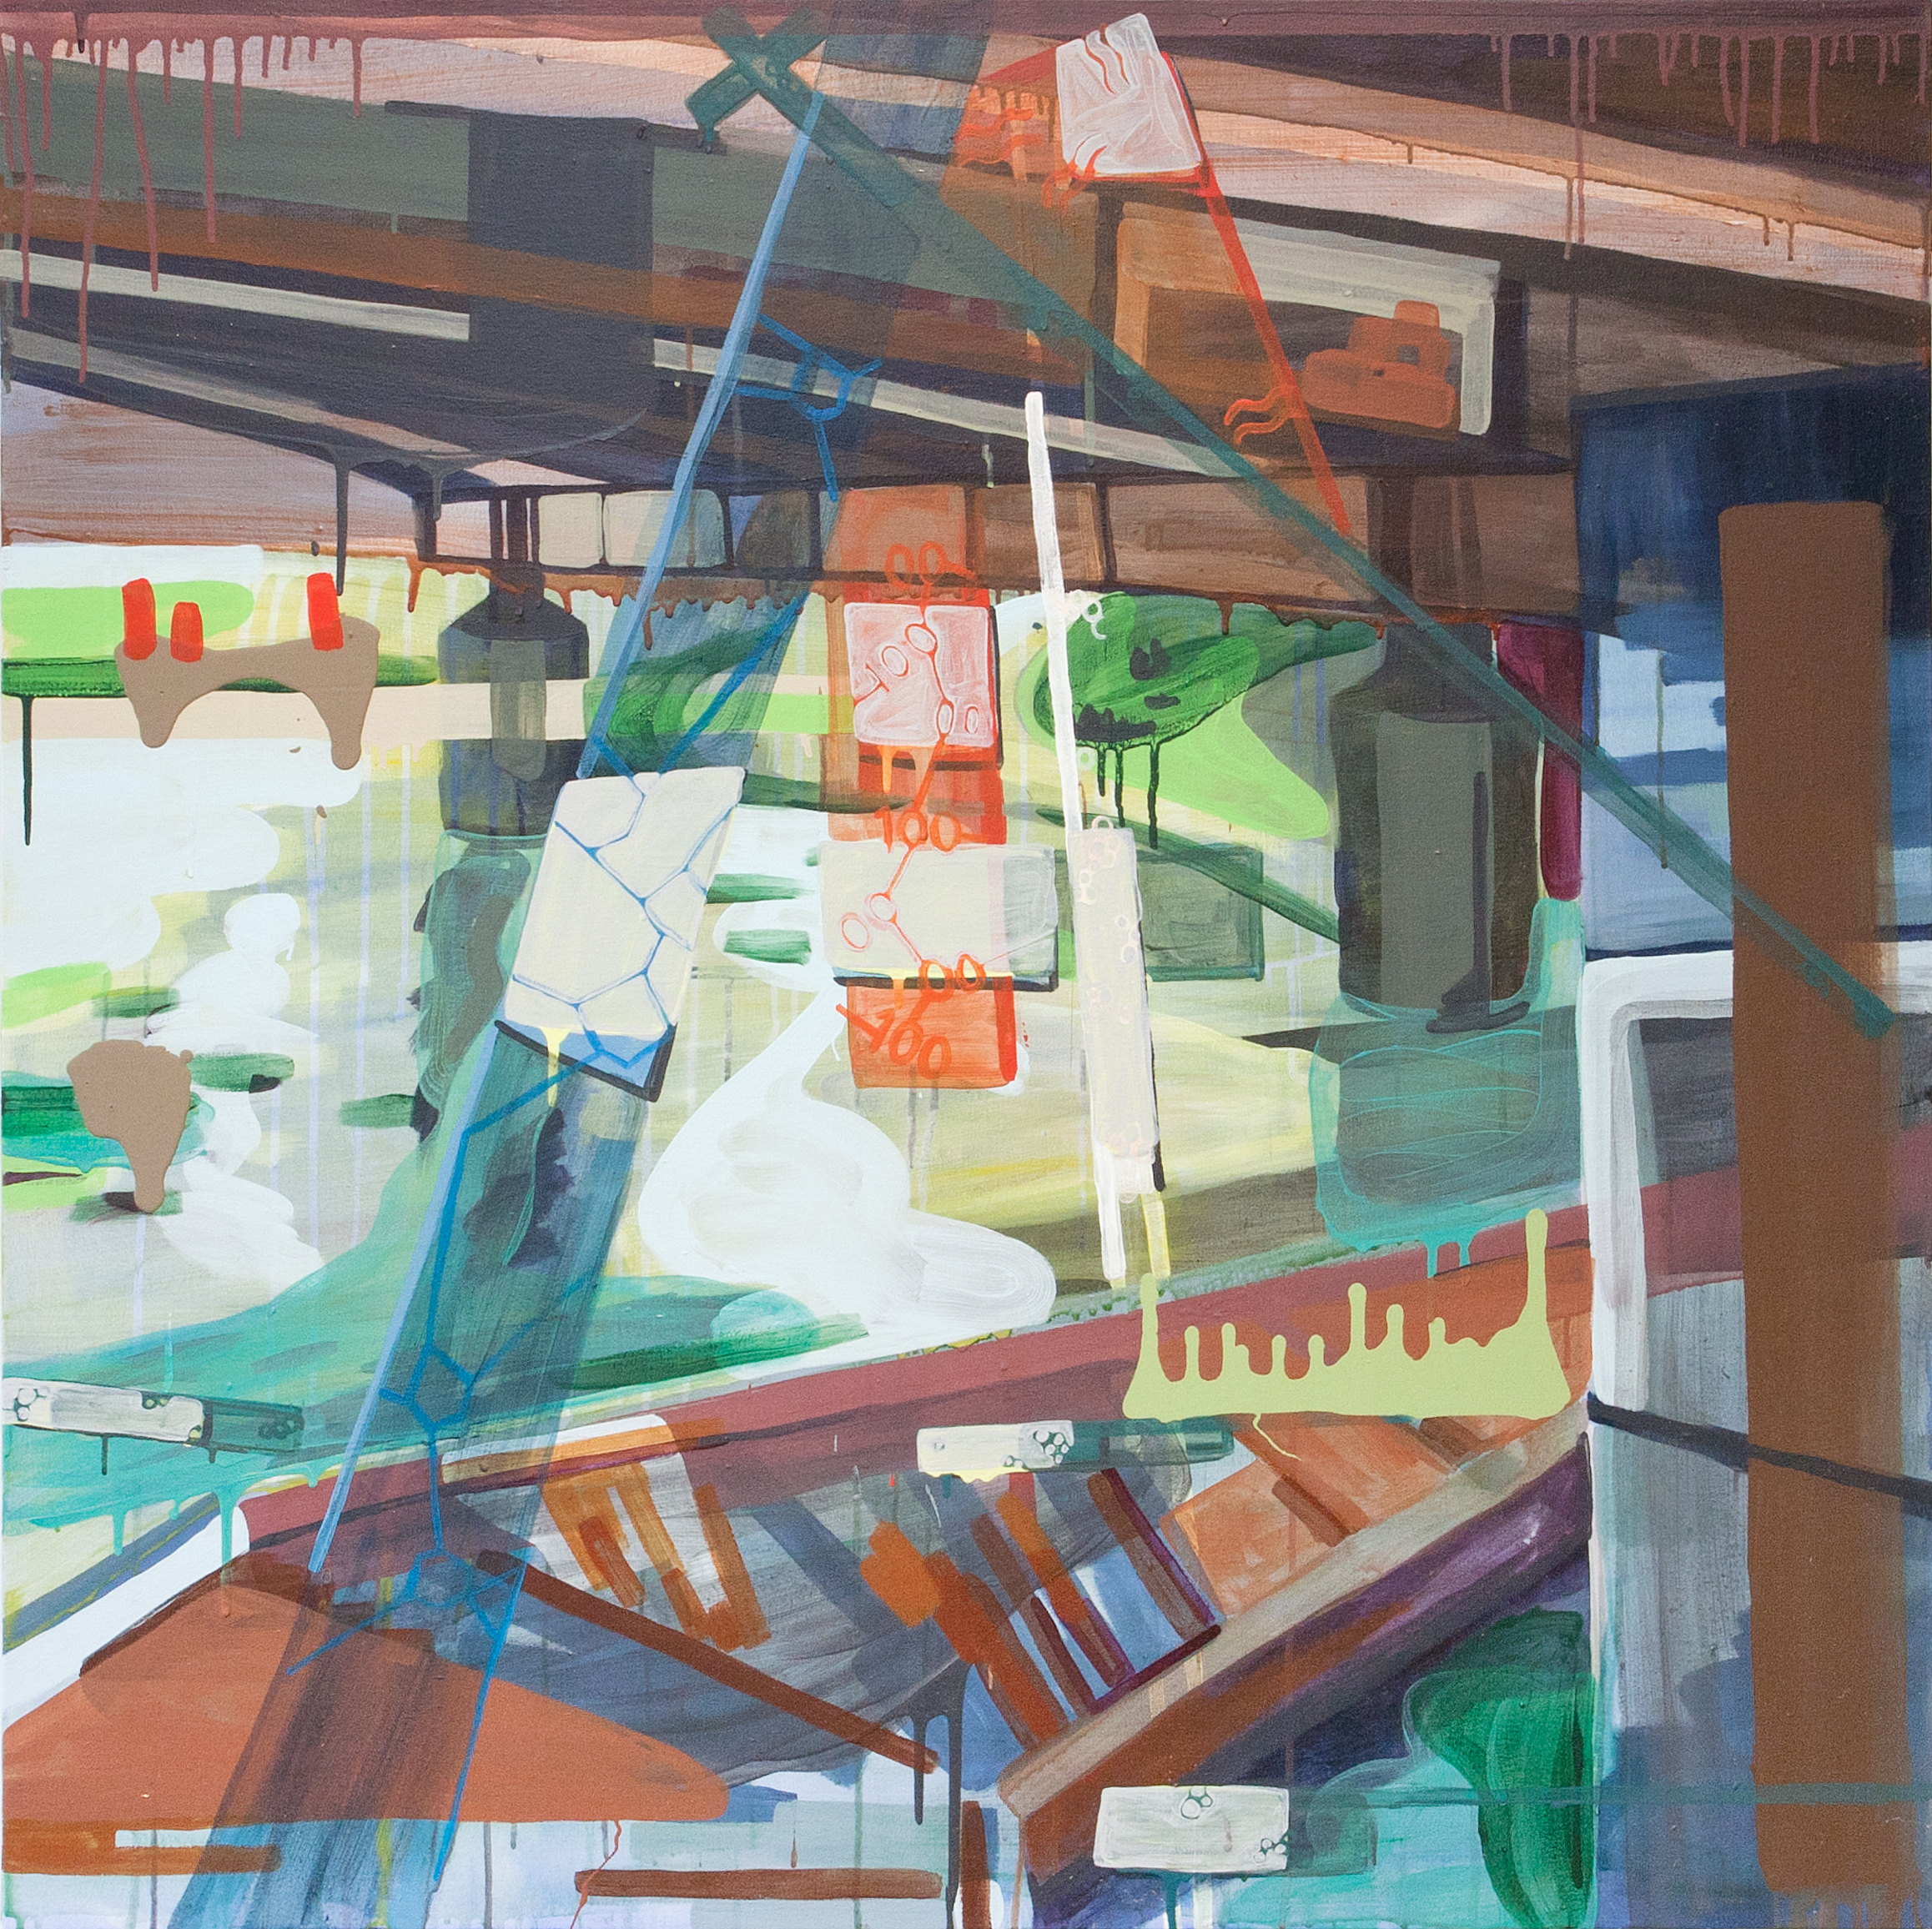 Shared Use  , 2015, acrylic on canvas, 44 x 44 inches.